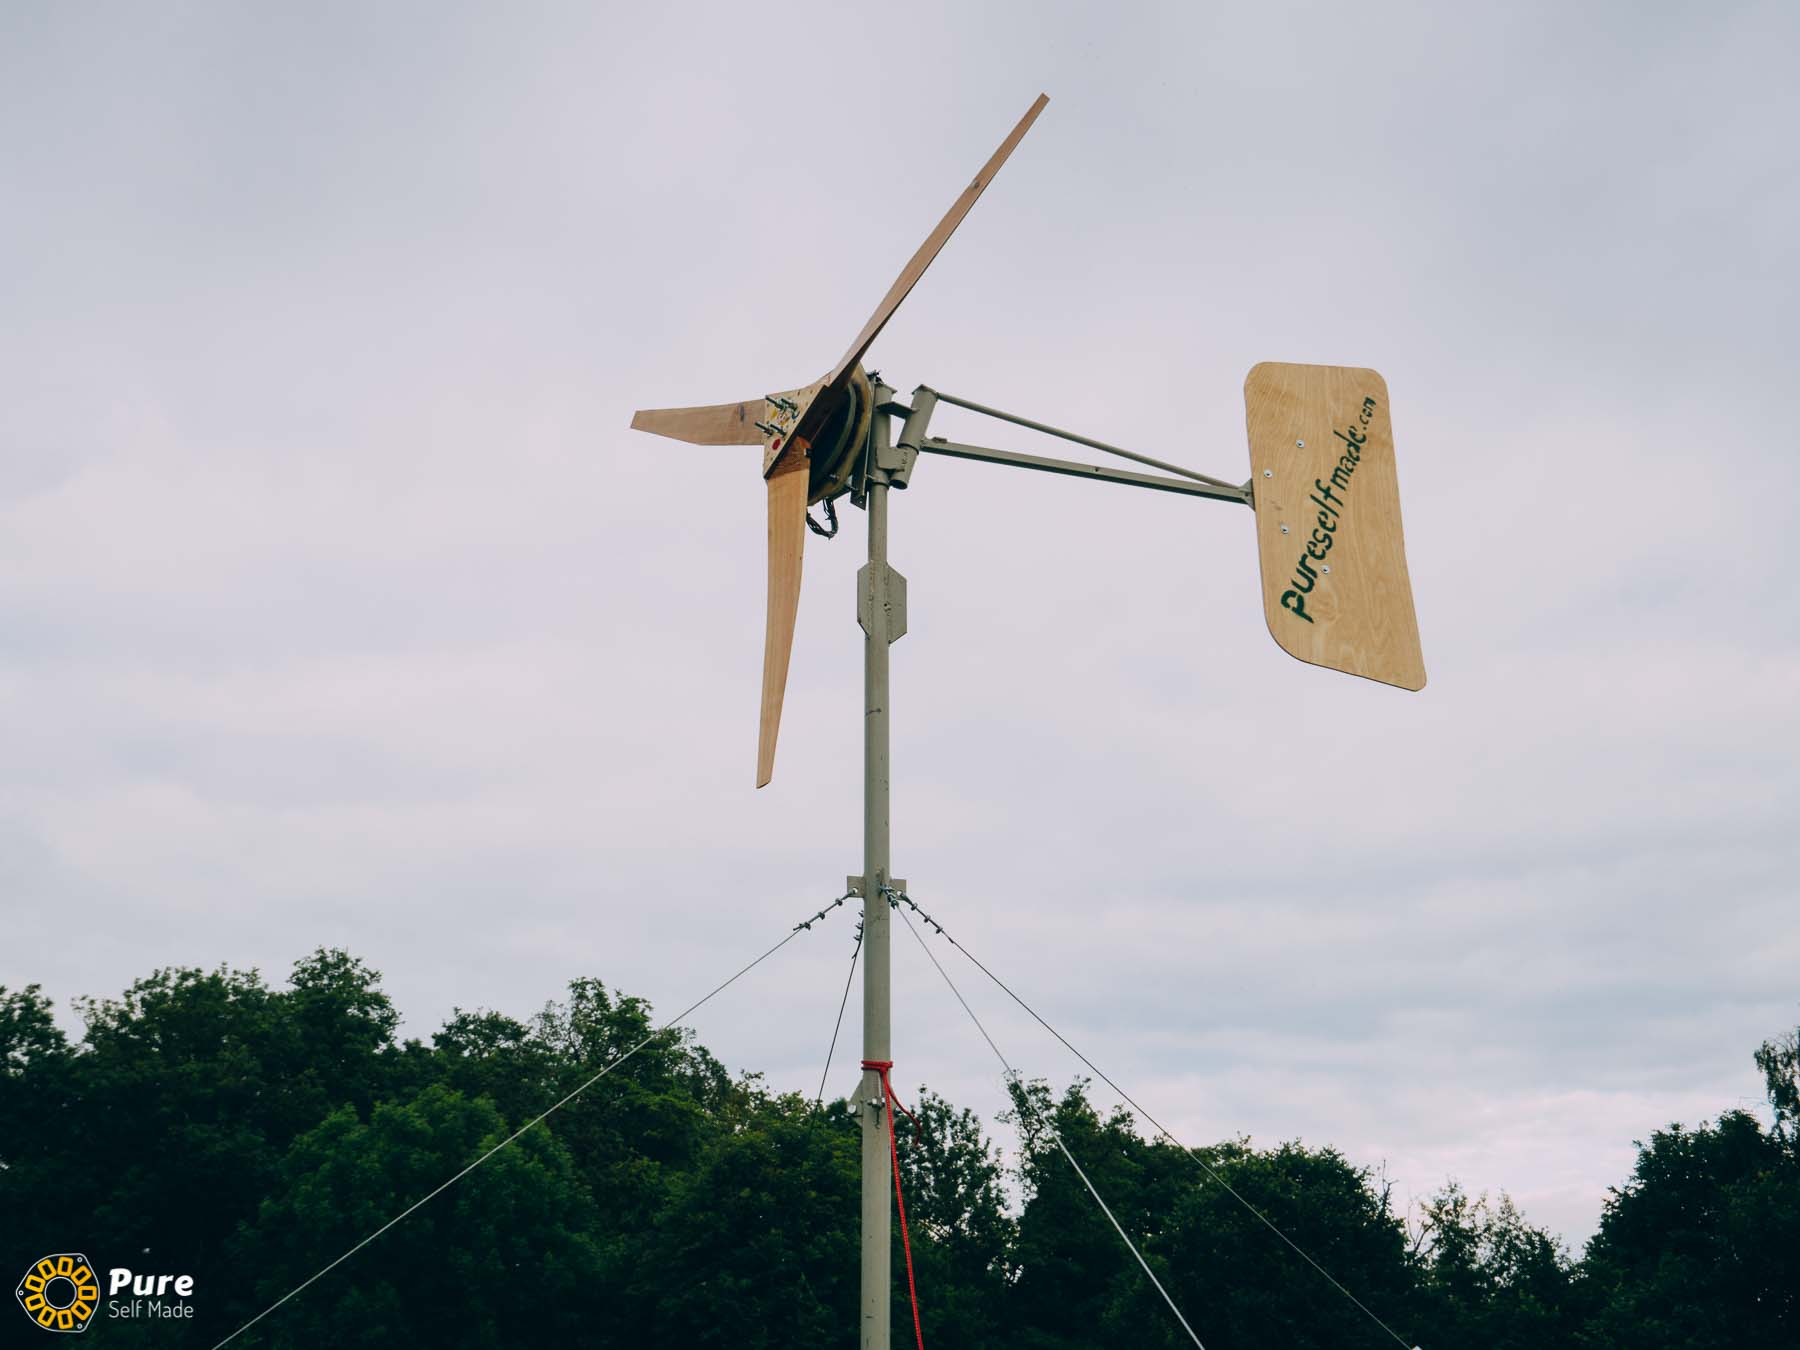 DIY Piggott Wind Turbines – Background information – PureSelfMade